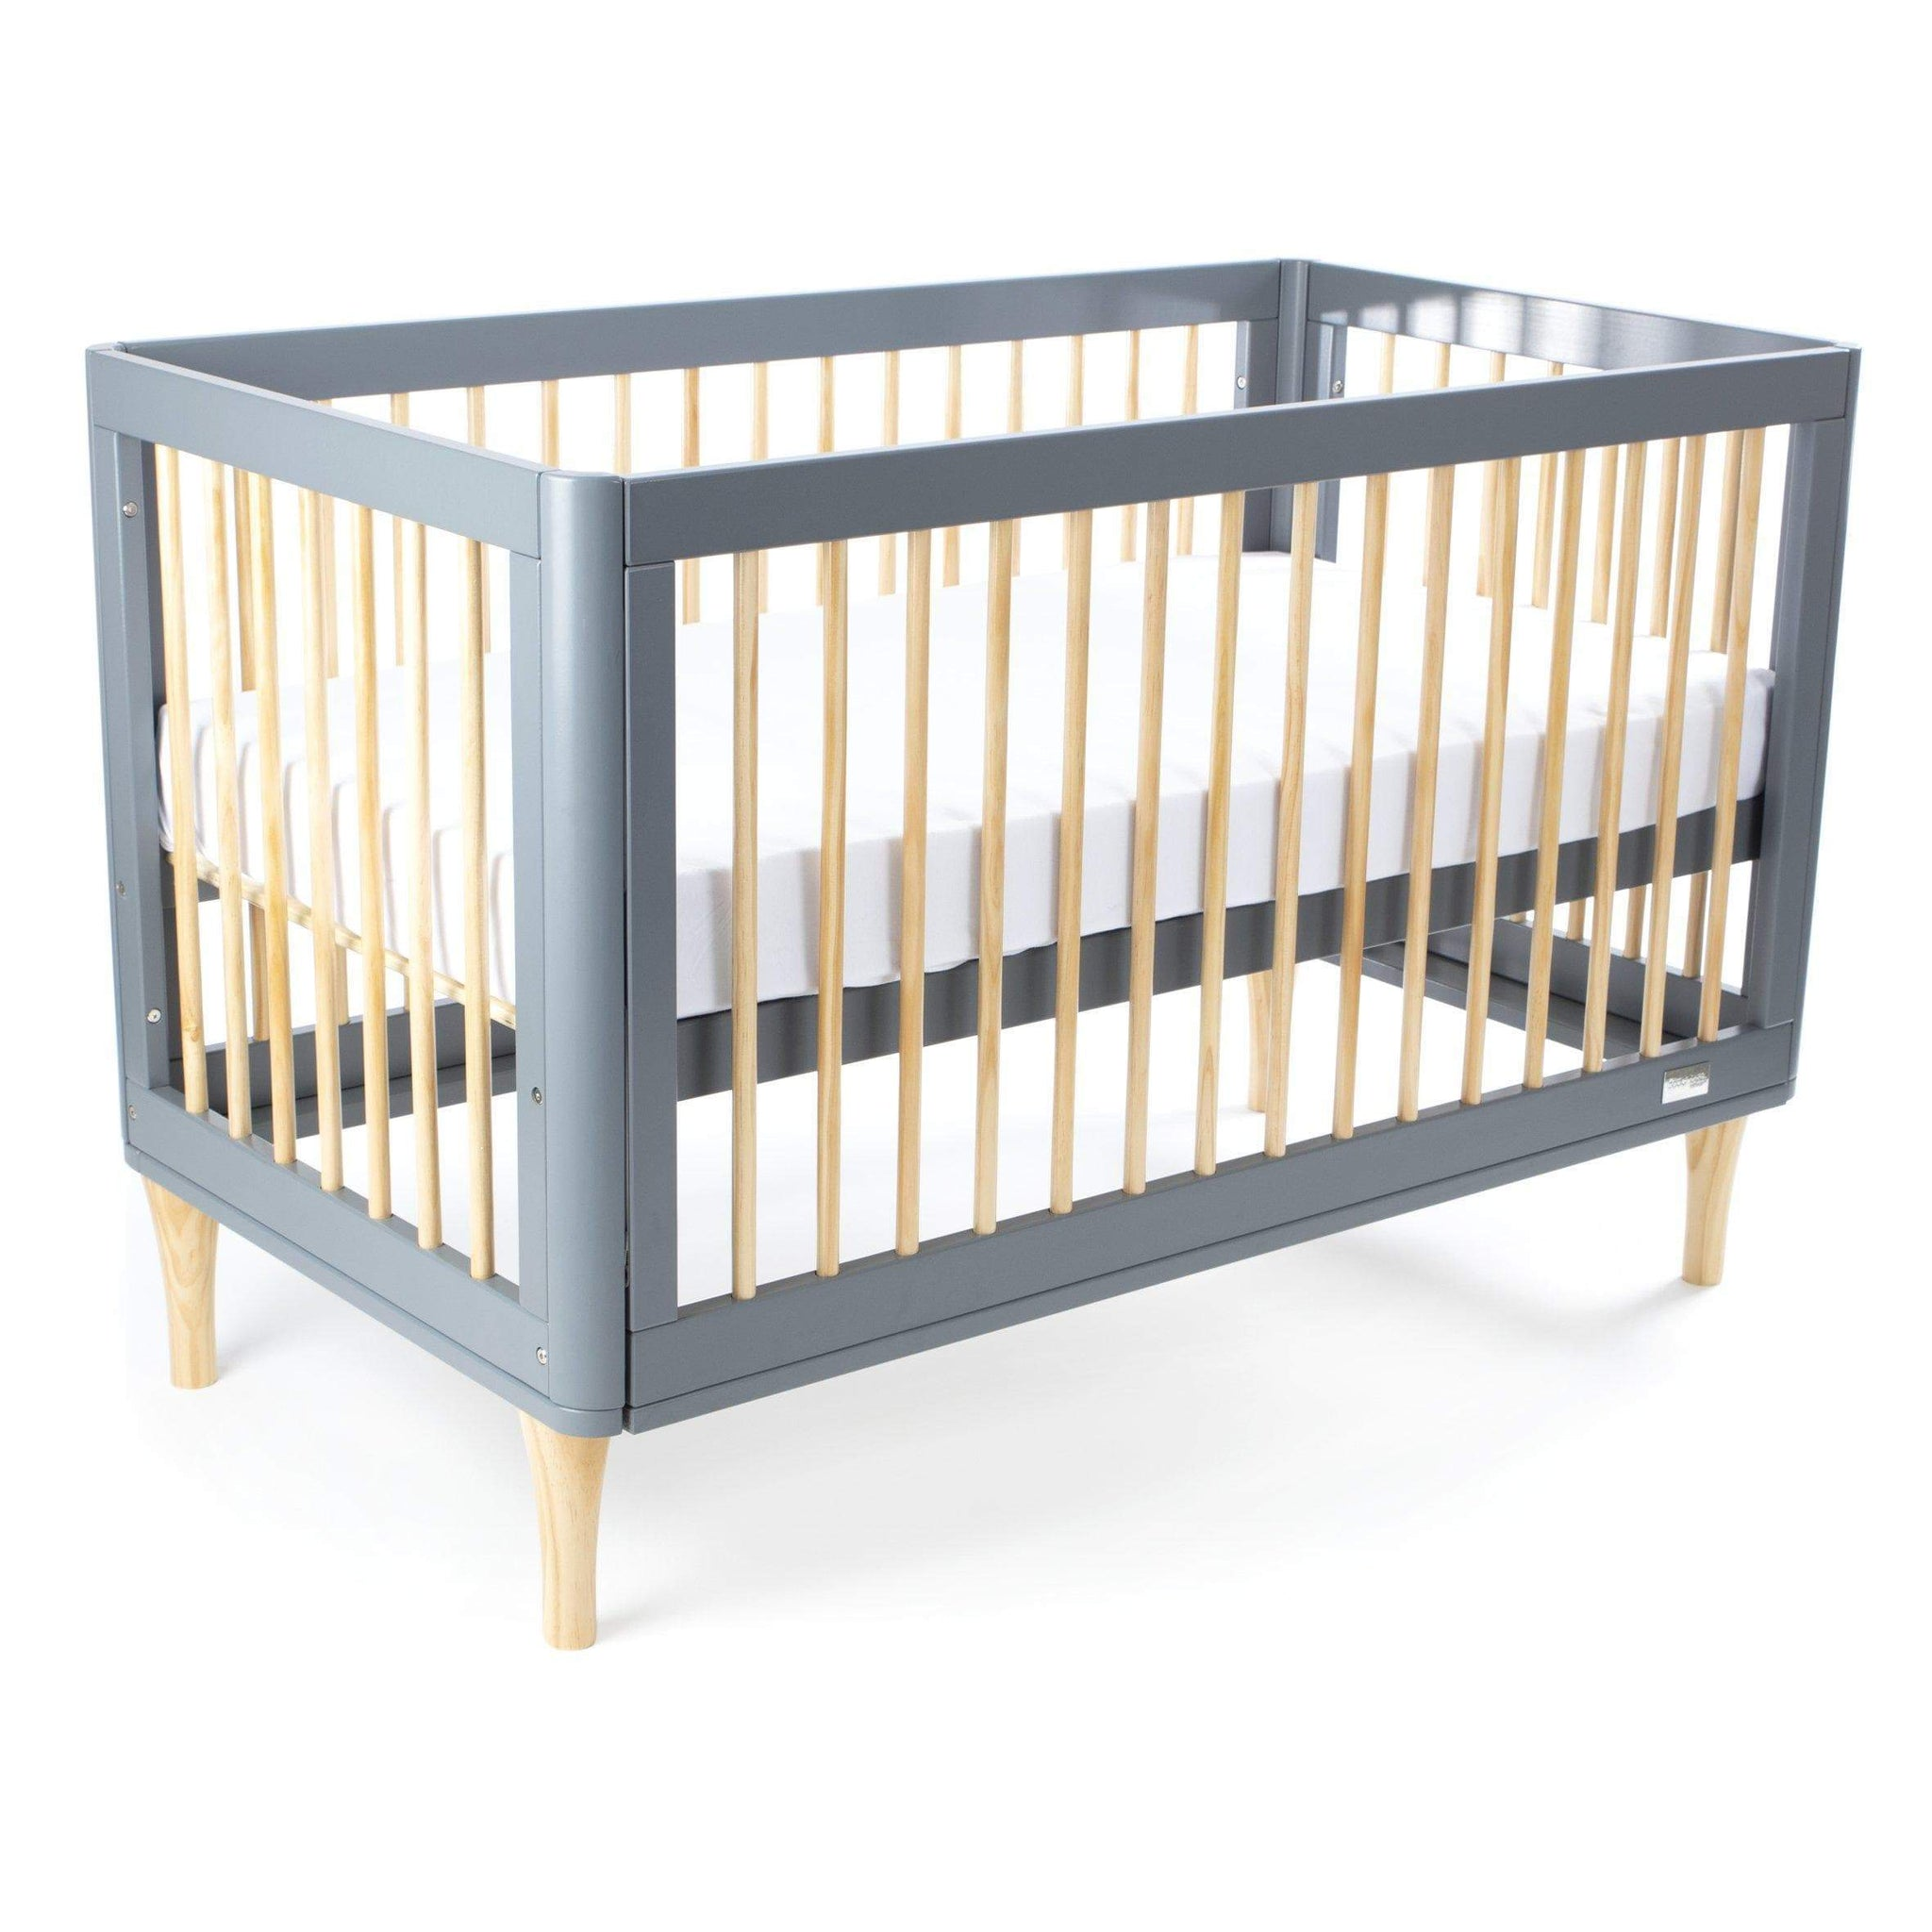 Babyhood Riya 5 in 1 Cot - Grey